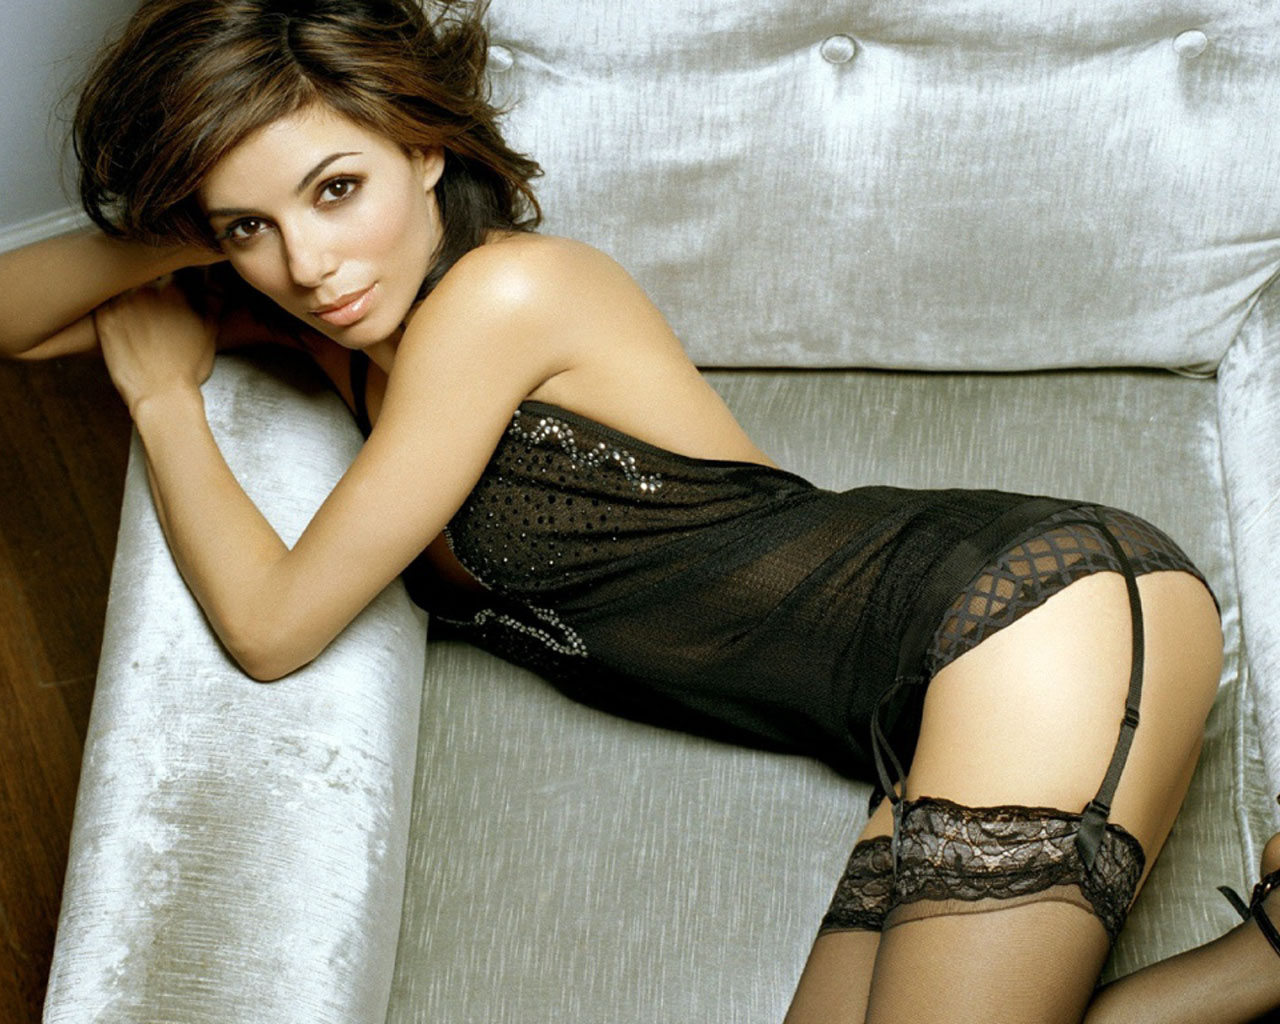 Hot Eva Longoria nude (45 foto and video), Ass, Fappening, Boobs, swimsuit 2020